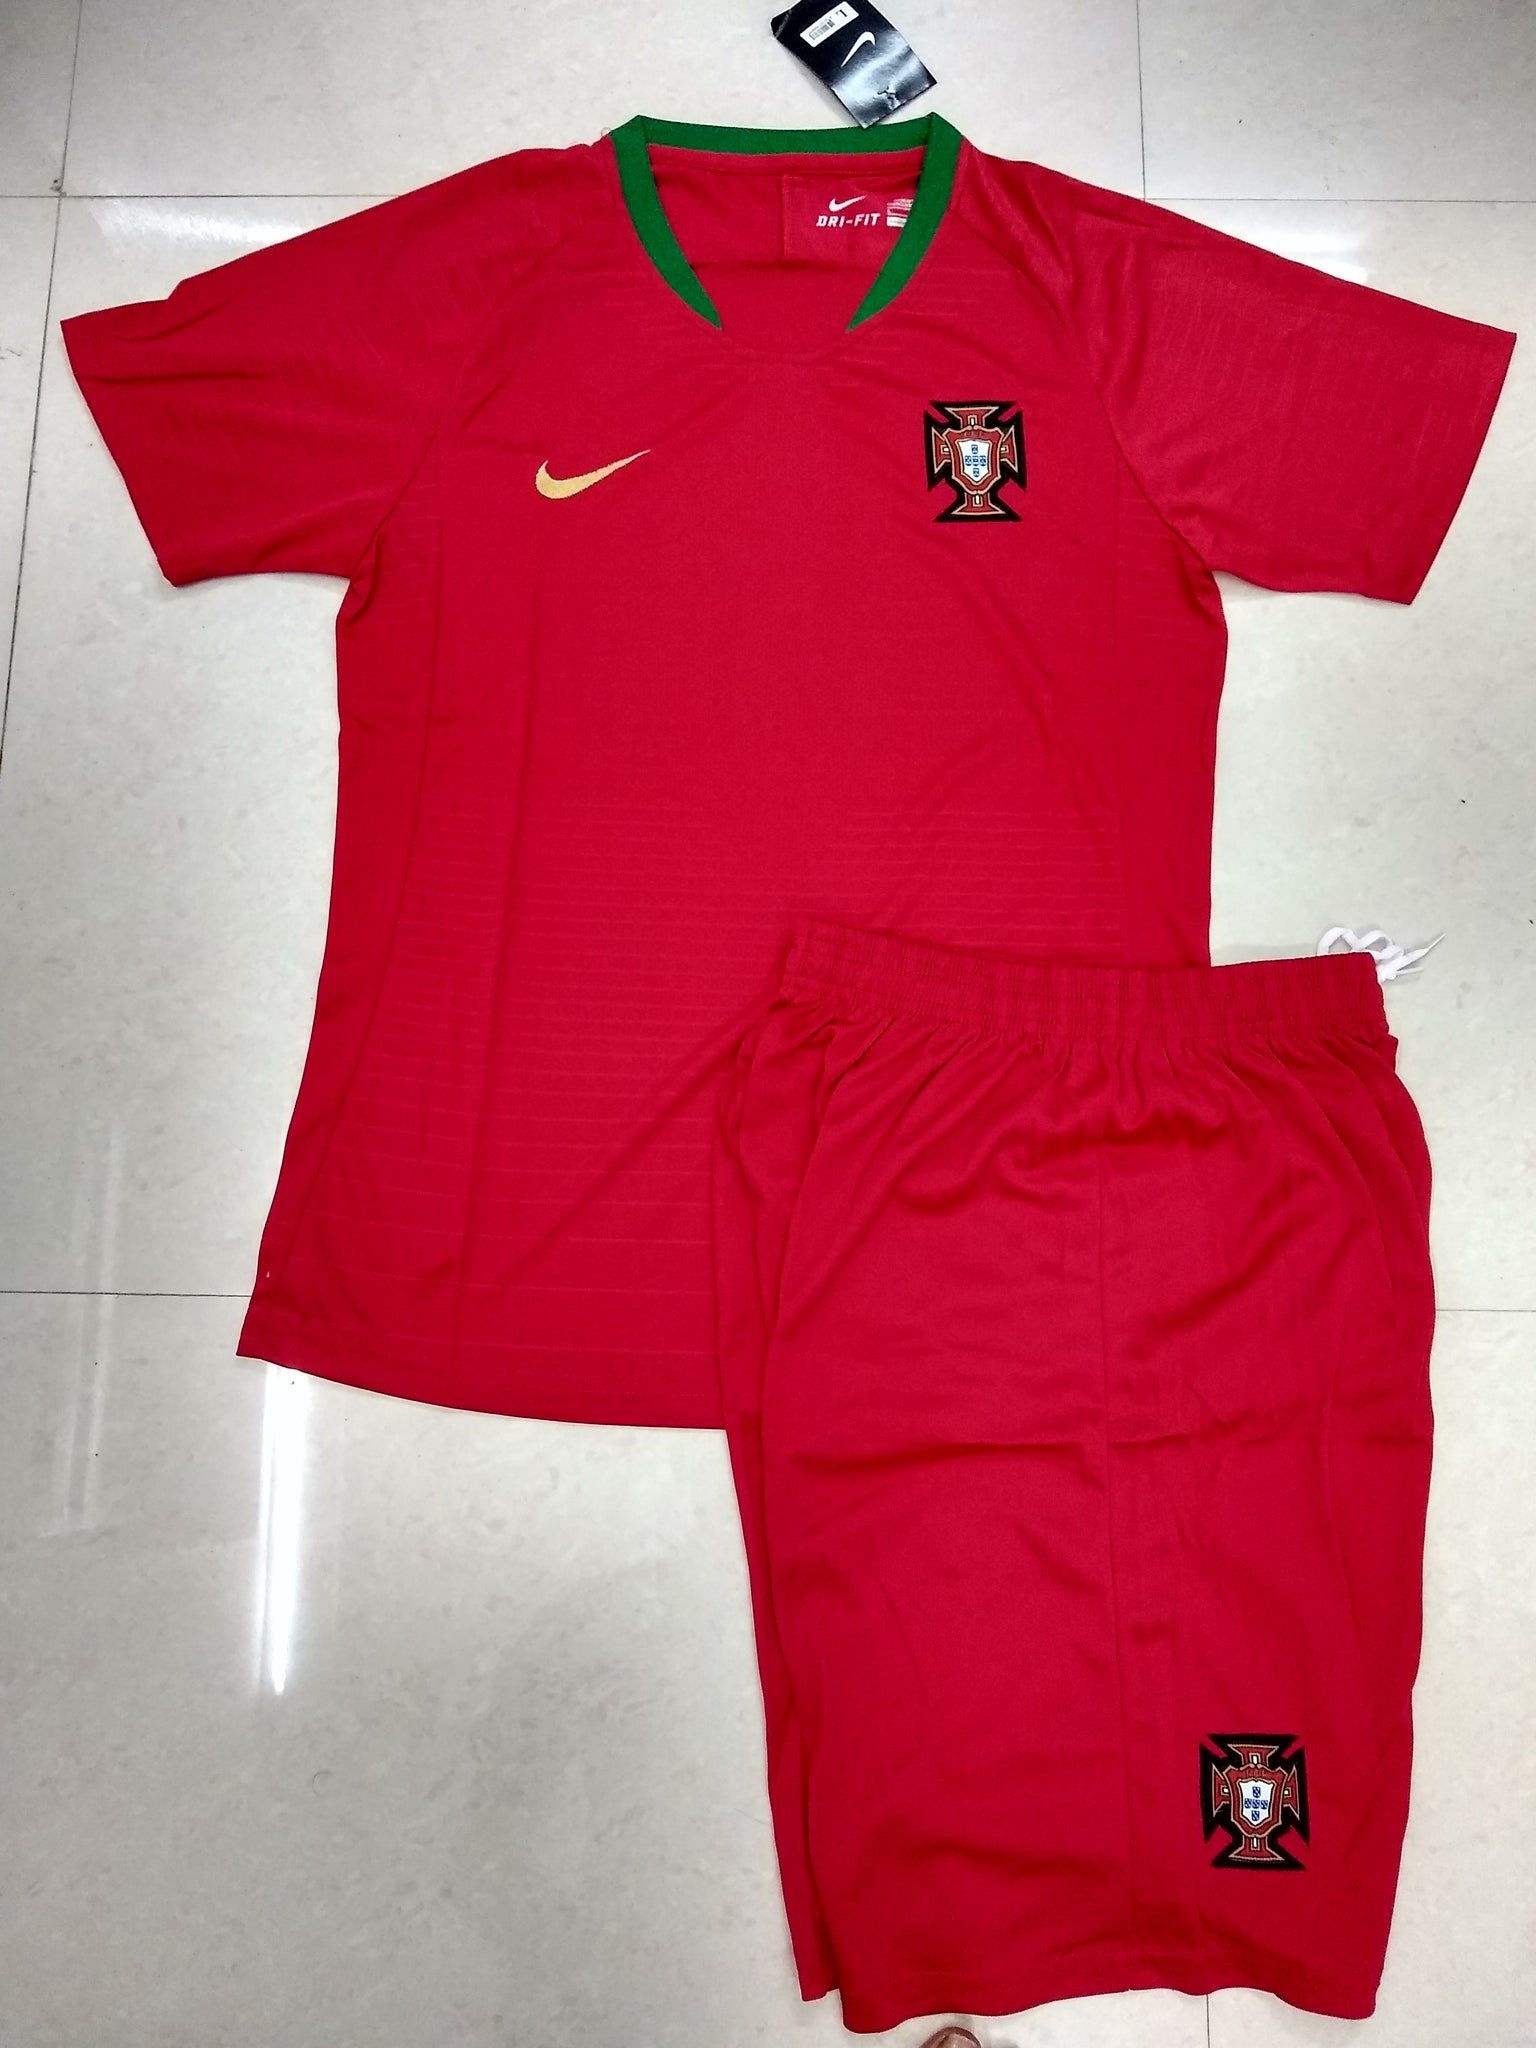 d1e2bbce873 Portugal Football Jersey FIFA World Cup 2018 replica kit online ...